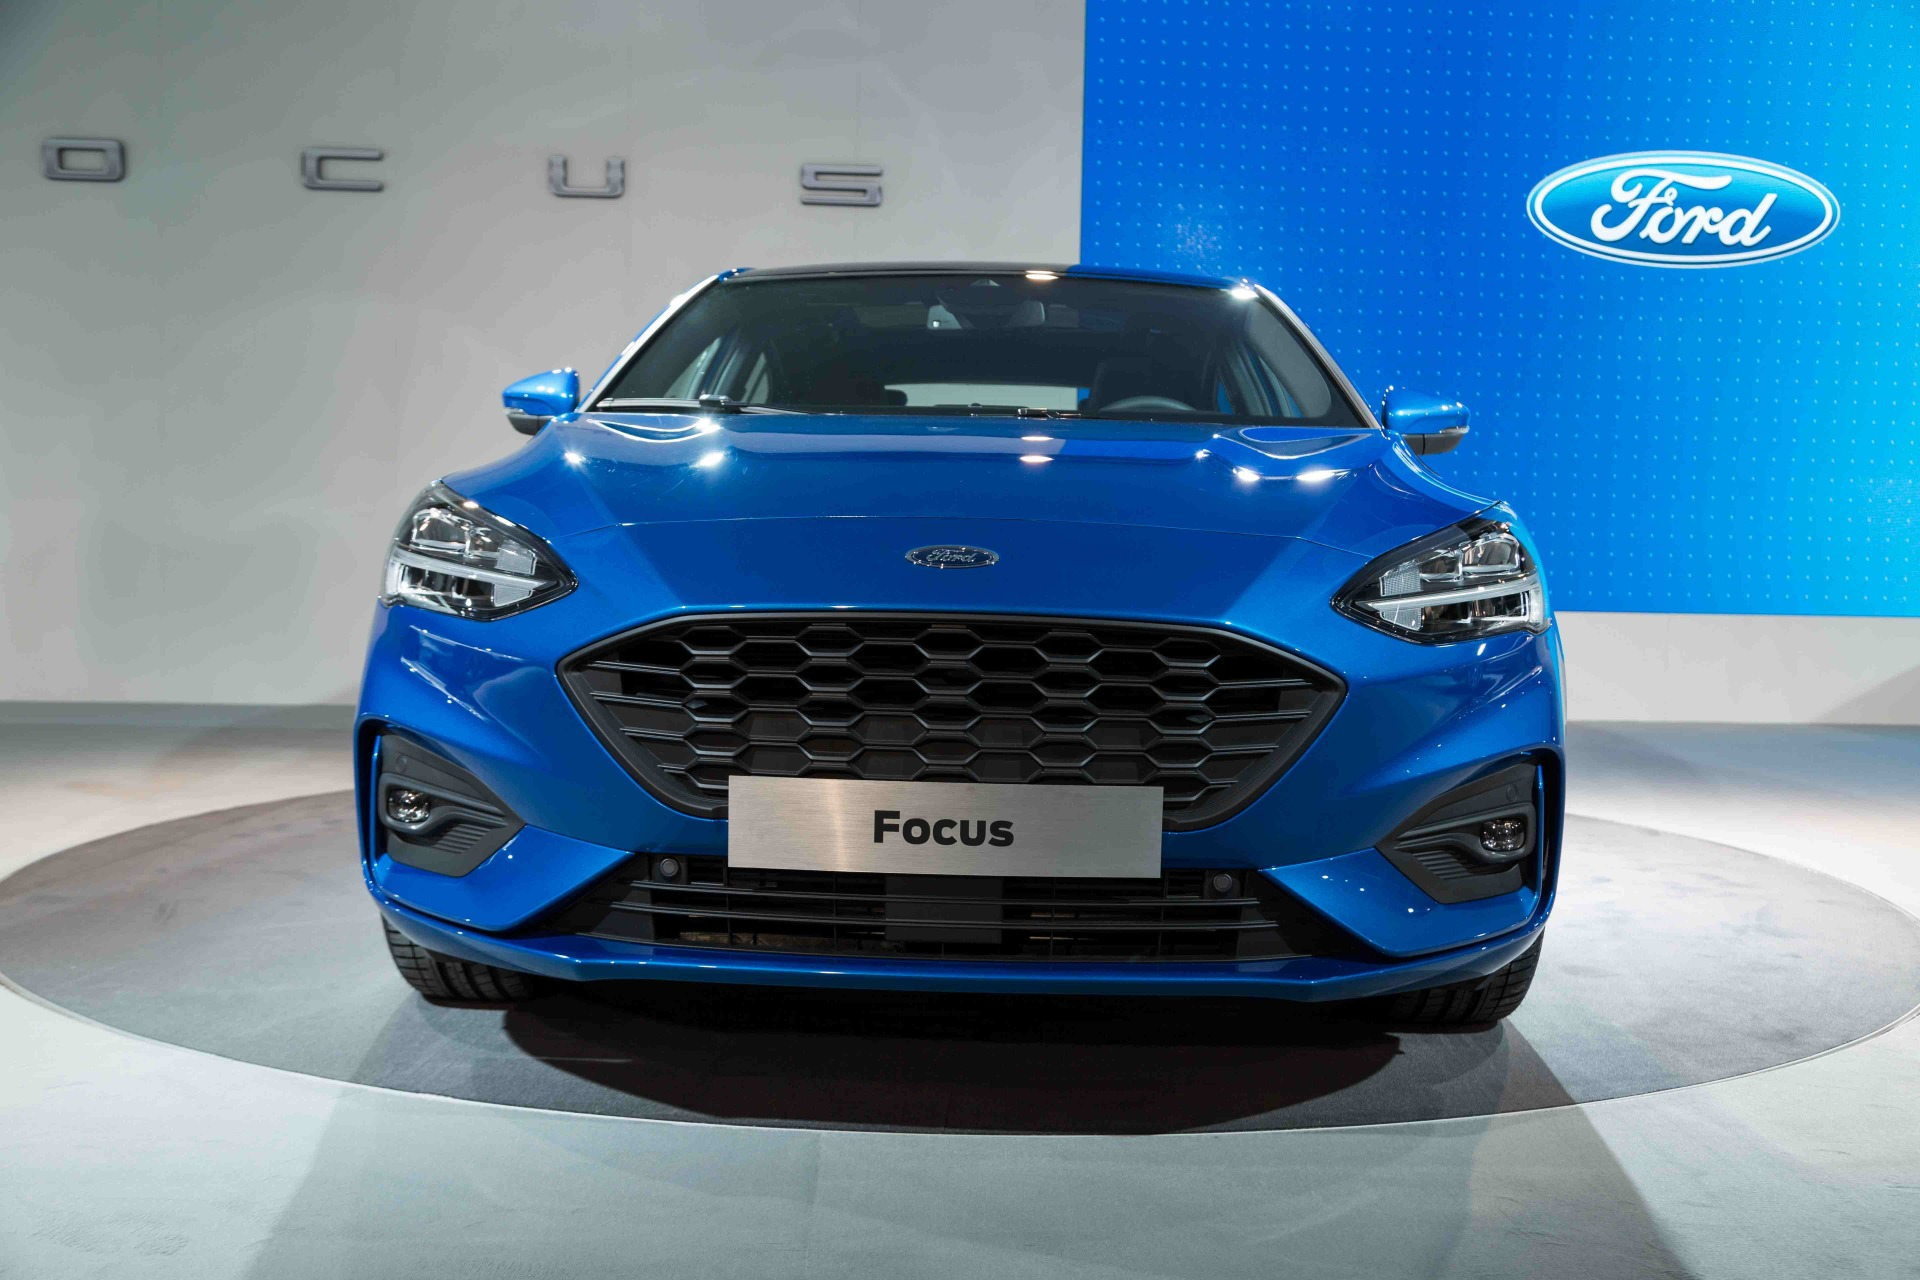 ford focus 4 2018 a bord de la nouvelle focus en vid o photo 10 l 39 argus. Black Bedroom Furniture Sets. Home Design Ideas